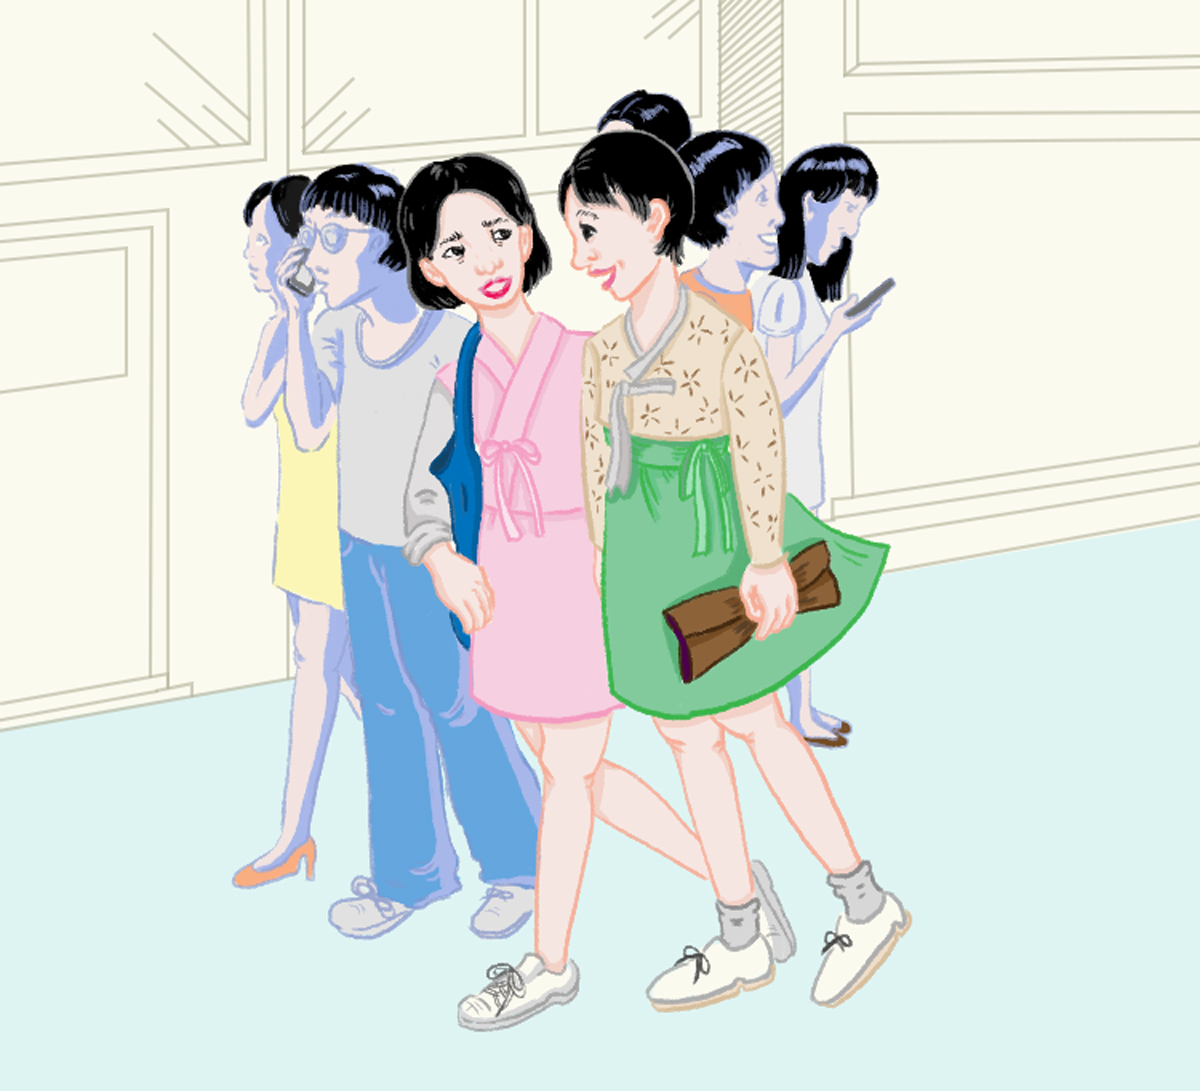 Young women strolling down the roads of Gangnam in modernized versions of the hanbok.